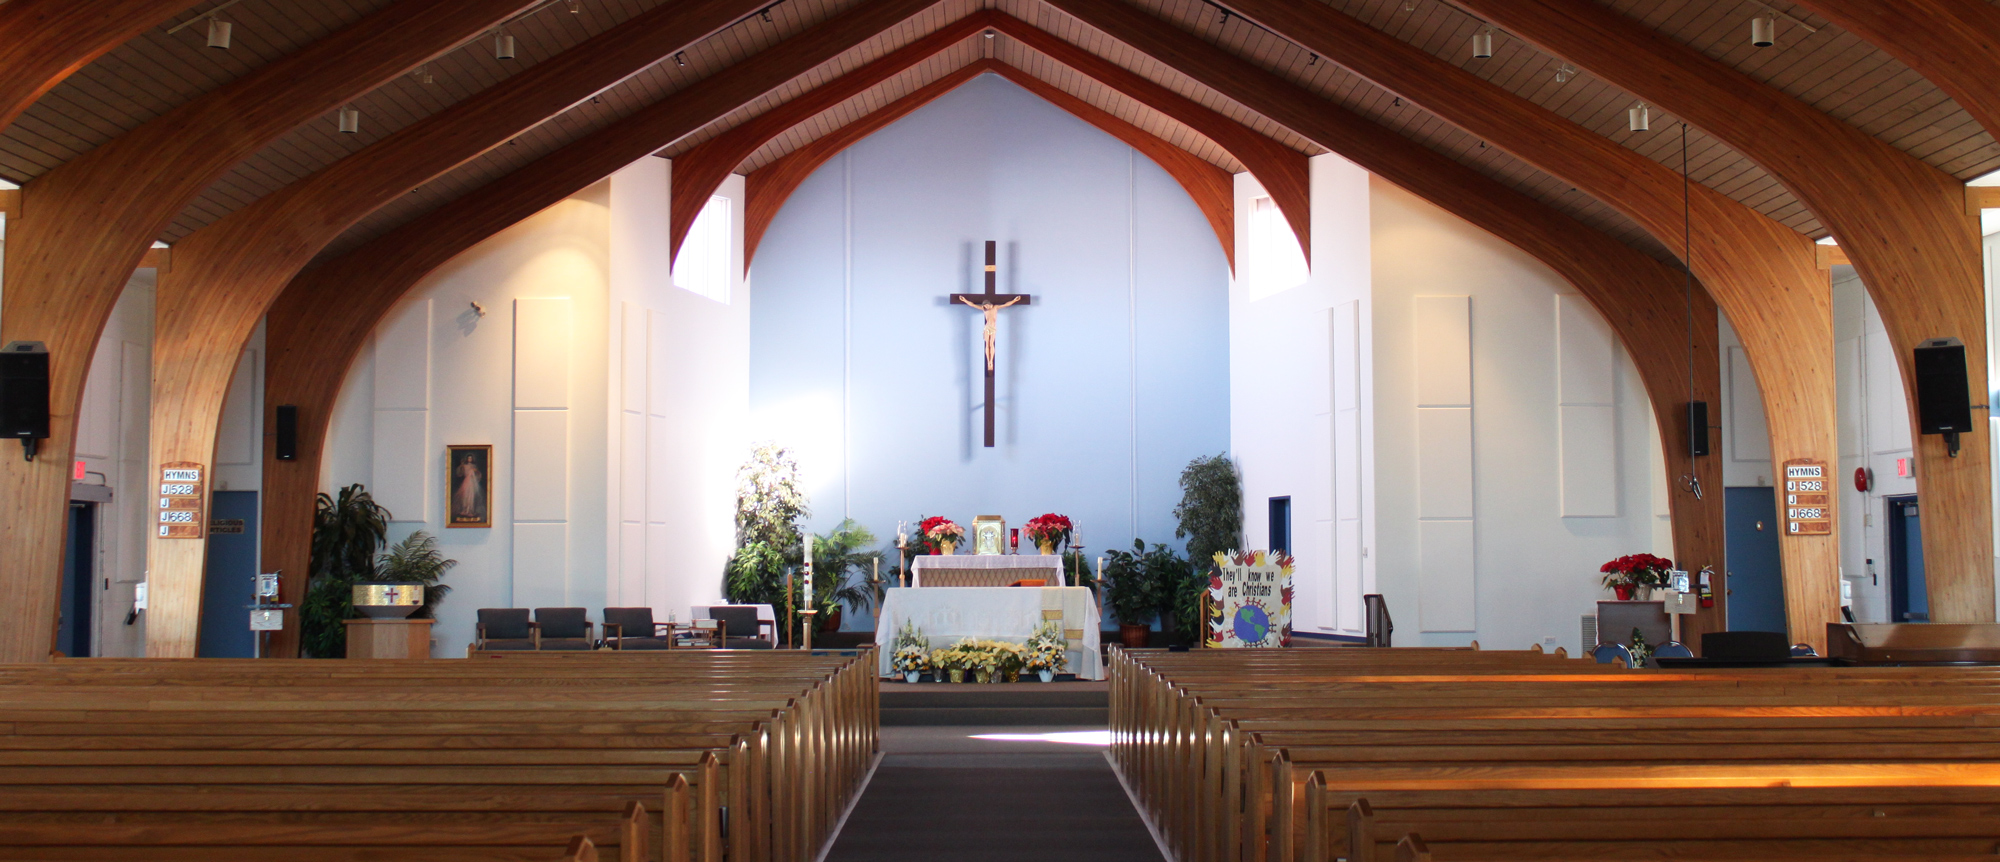 Audio Visual Amp Acoustic Solutions For Churches Amp Organizations